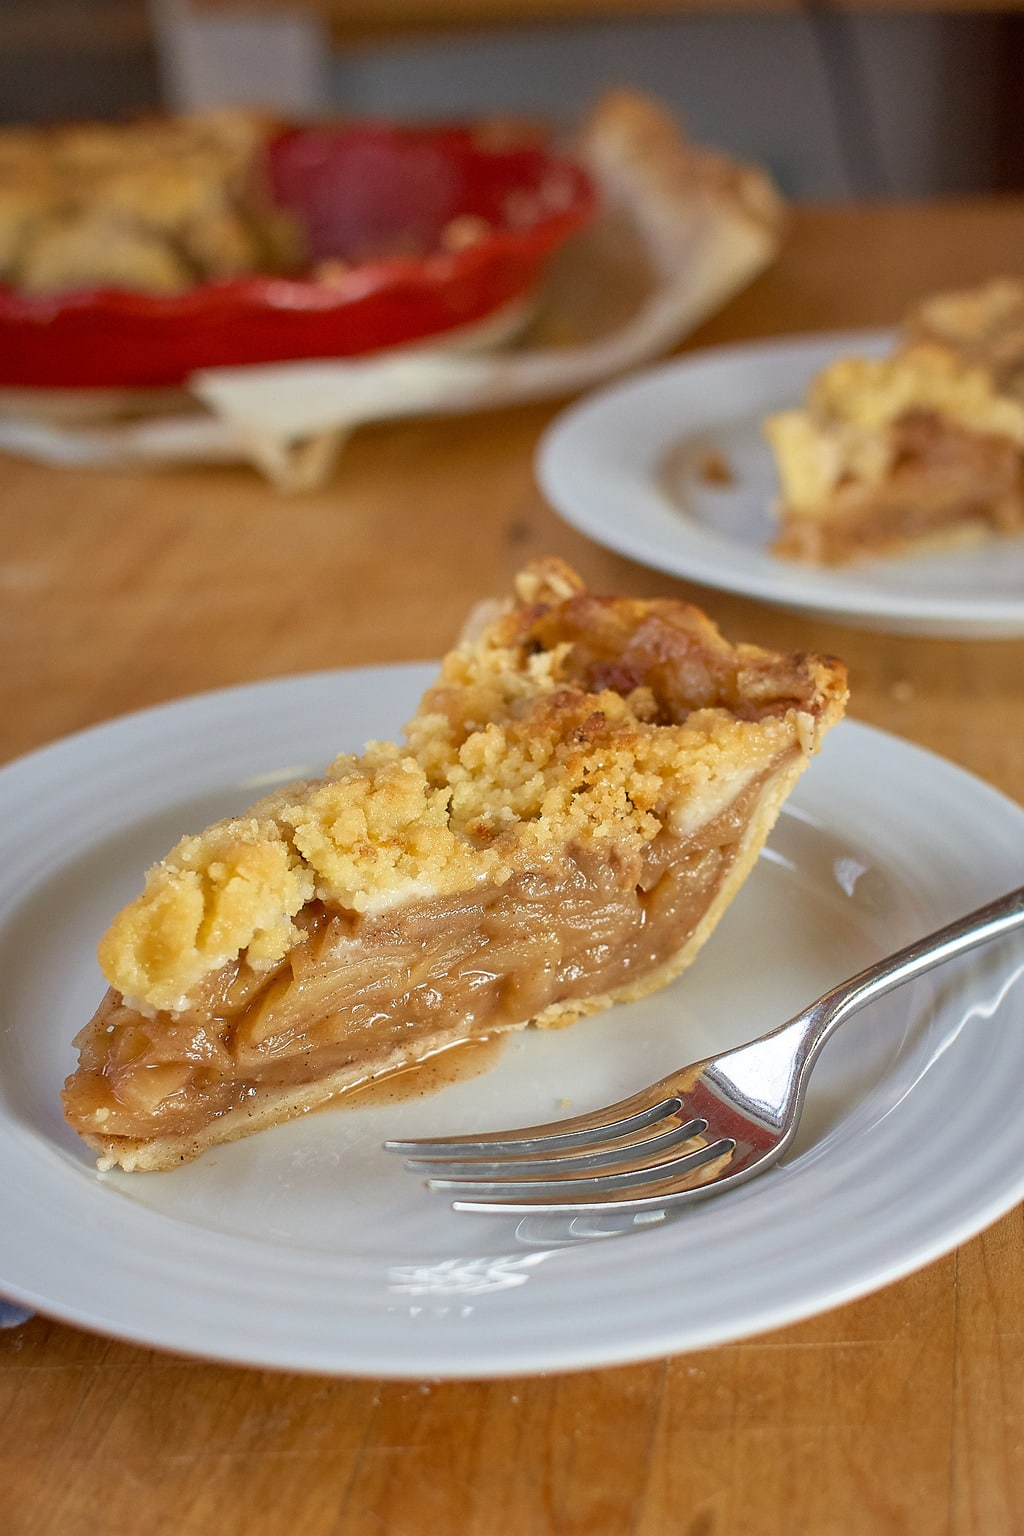 A slice of Dutch Apple Pie on a plate with a fork.